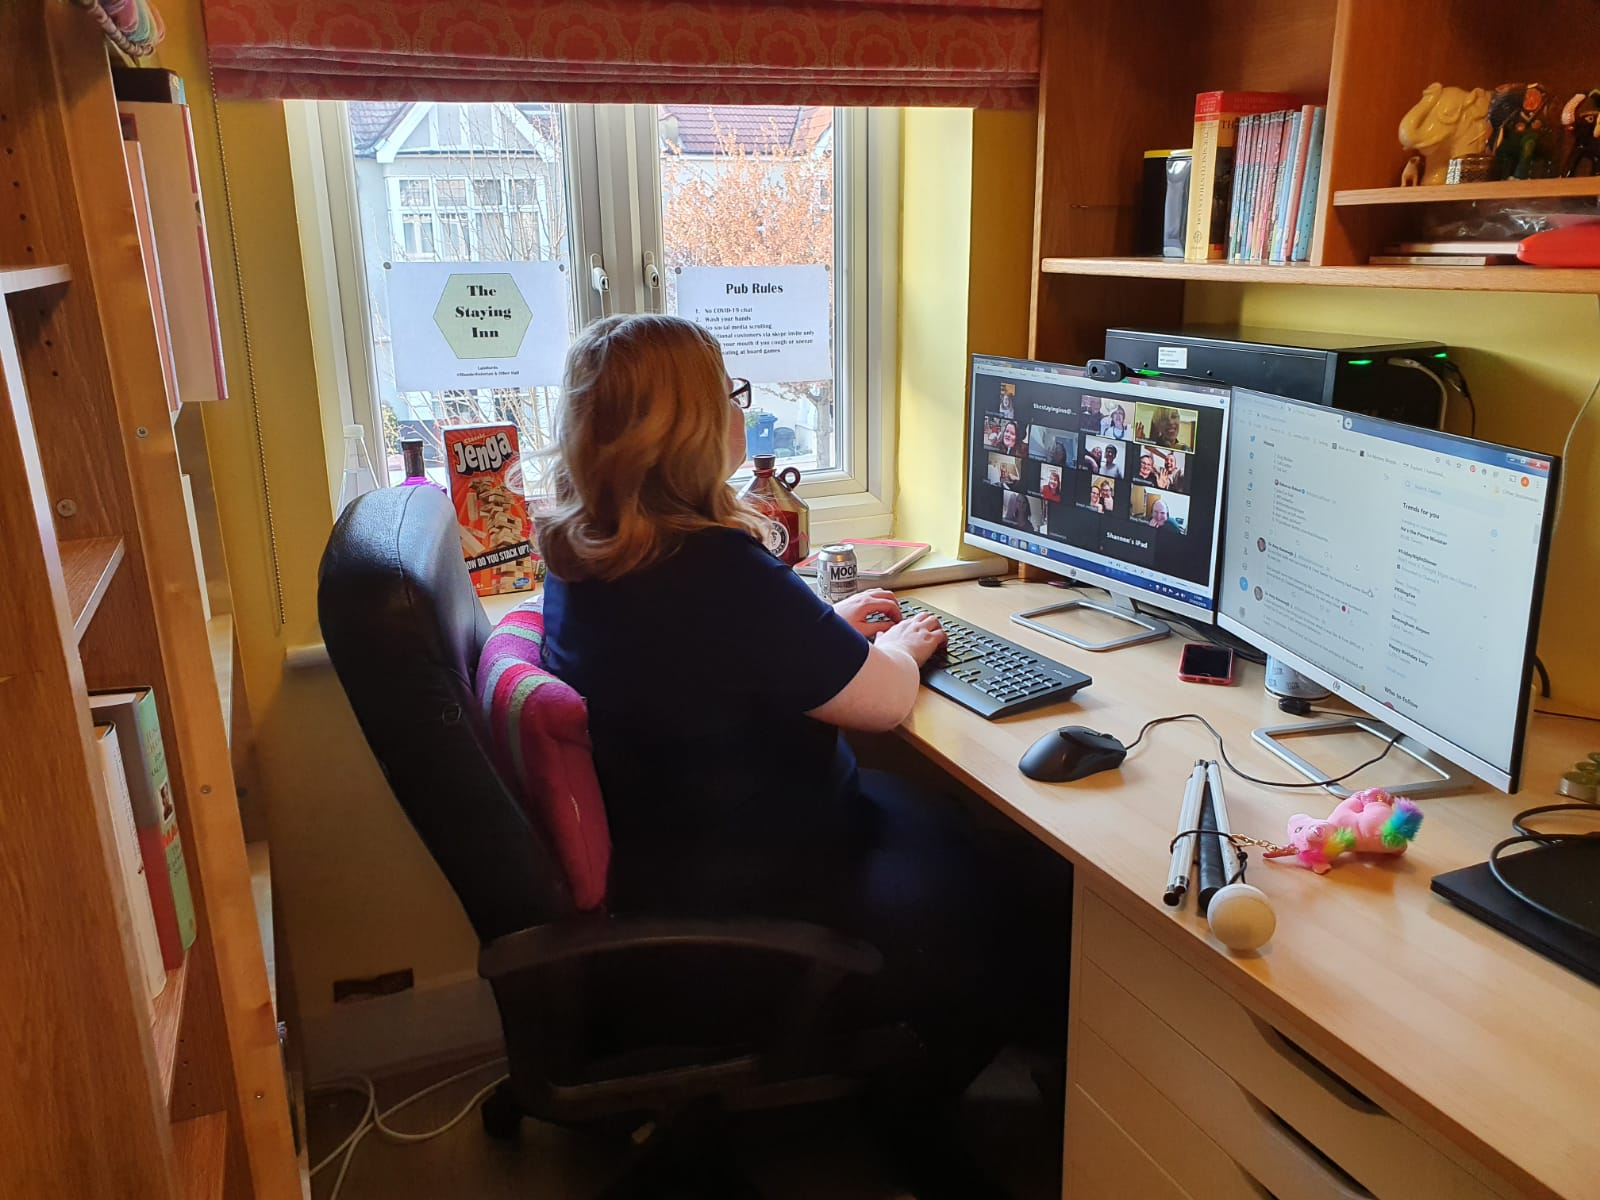 Dr Amy Kavanagh, a visually impaired activist, at her desk where she runs most of The Staying Inn's events